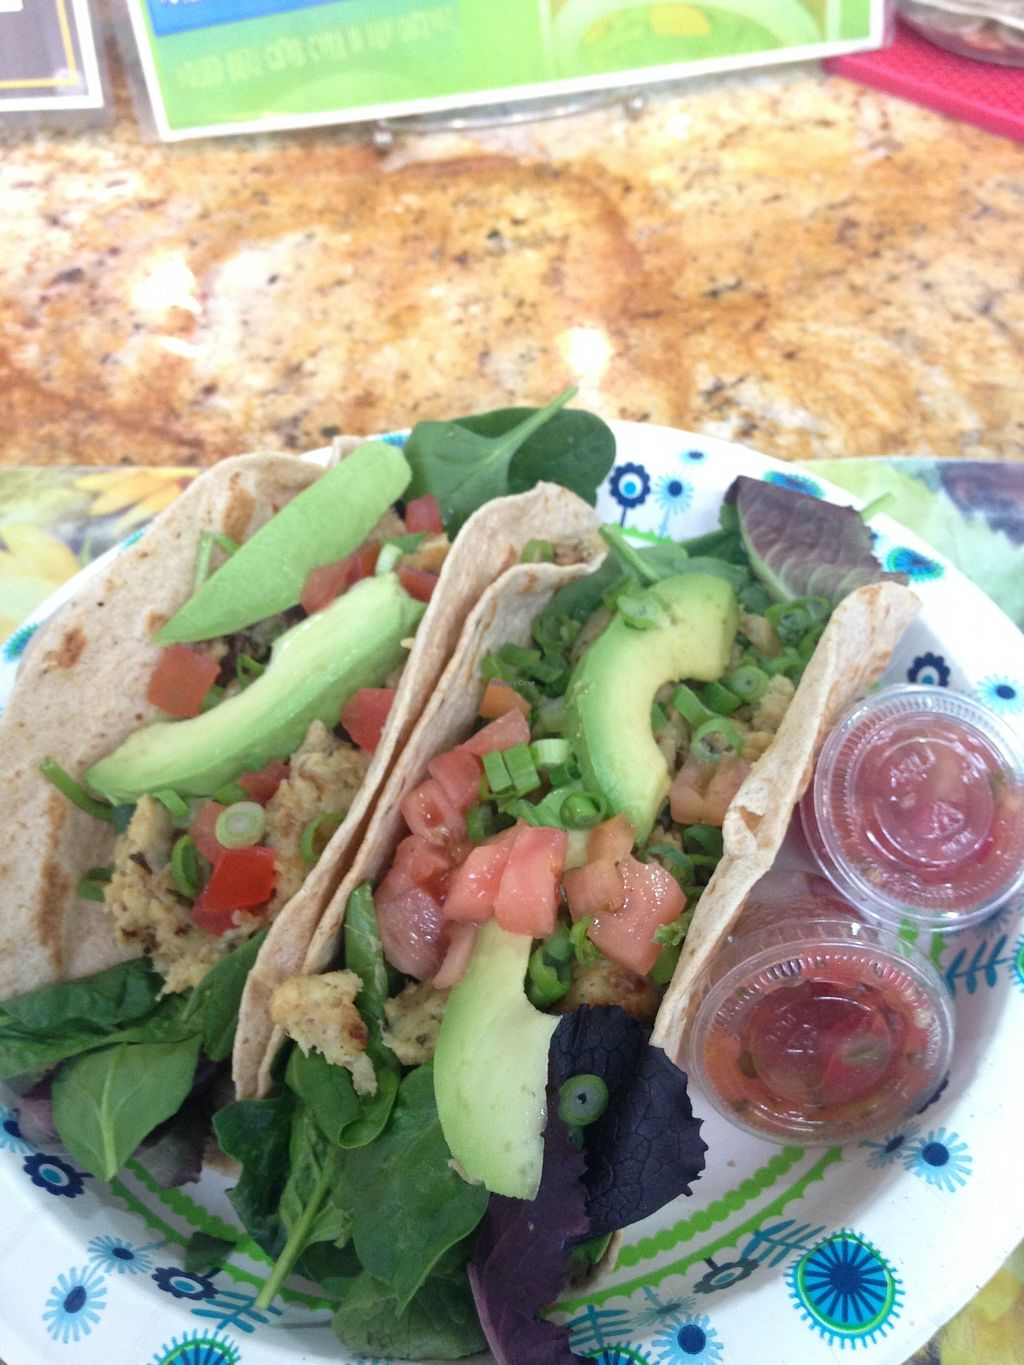 """Photo of Meals From The Heart Cafe  by <a href=""""/members/profile/BreannaWhite"""">BreannaWhite</a> <br/>vegan crab cake tacos <br/> March 27, 2018  - <a href='/contact/abuse/image/25883/376974'>Report</a>"""